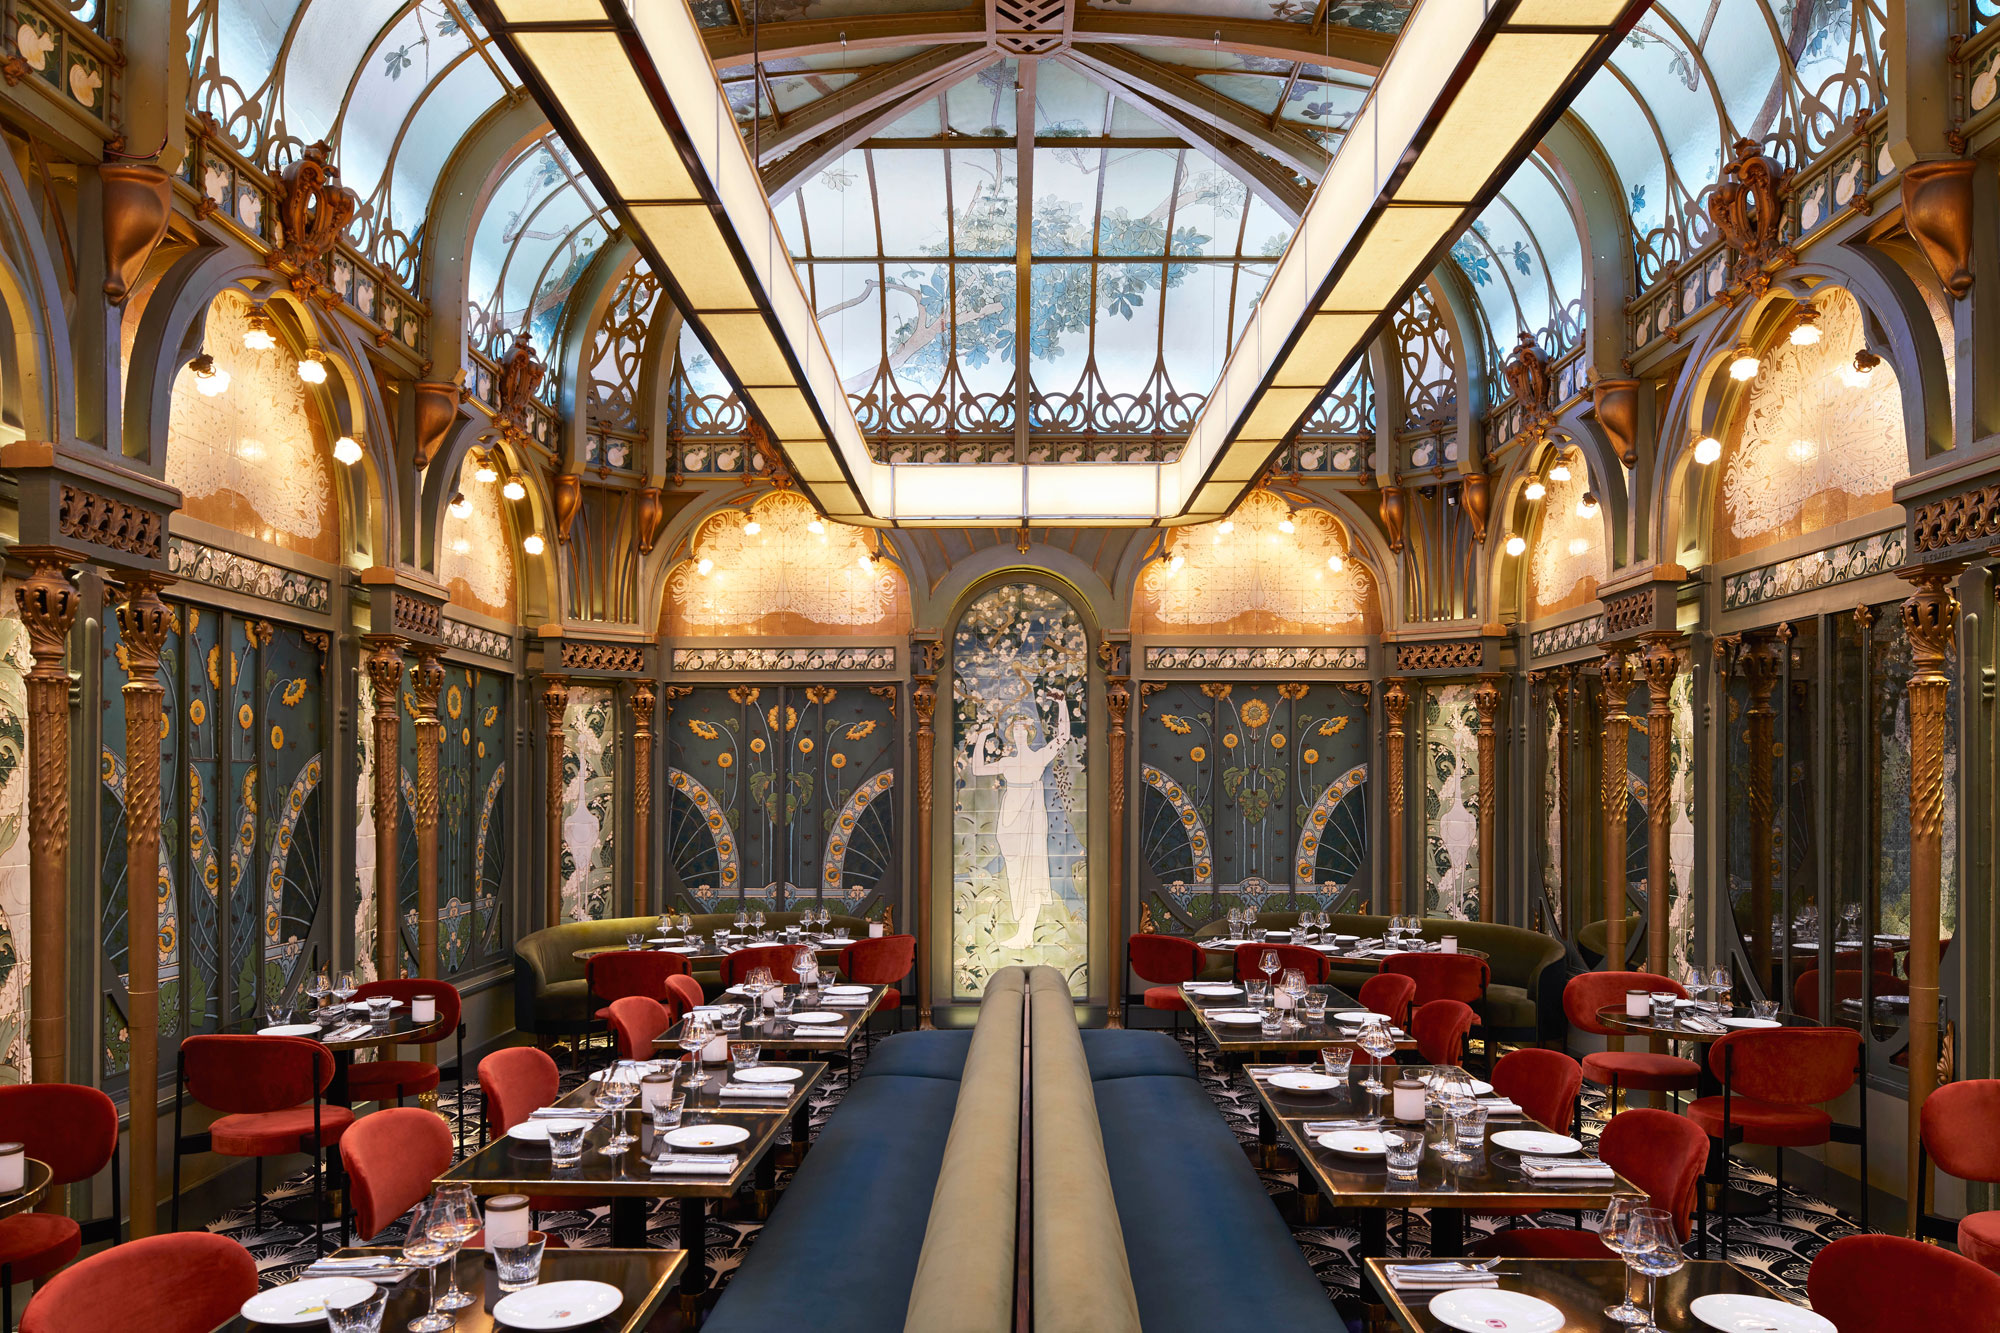 Dining Room Once Hidden From the Nazis Marries Art Nouveau With Red Meat